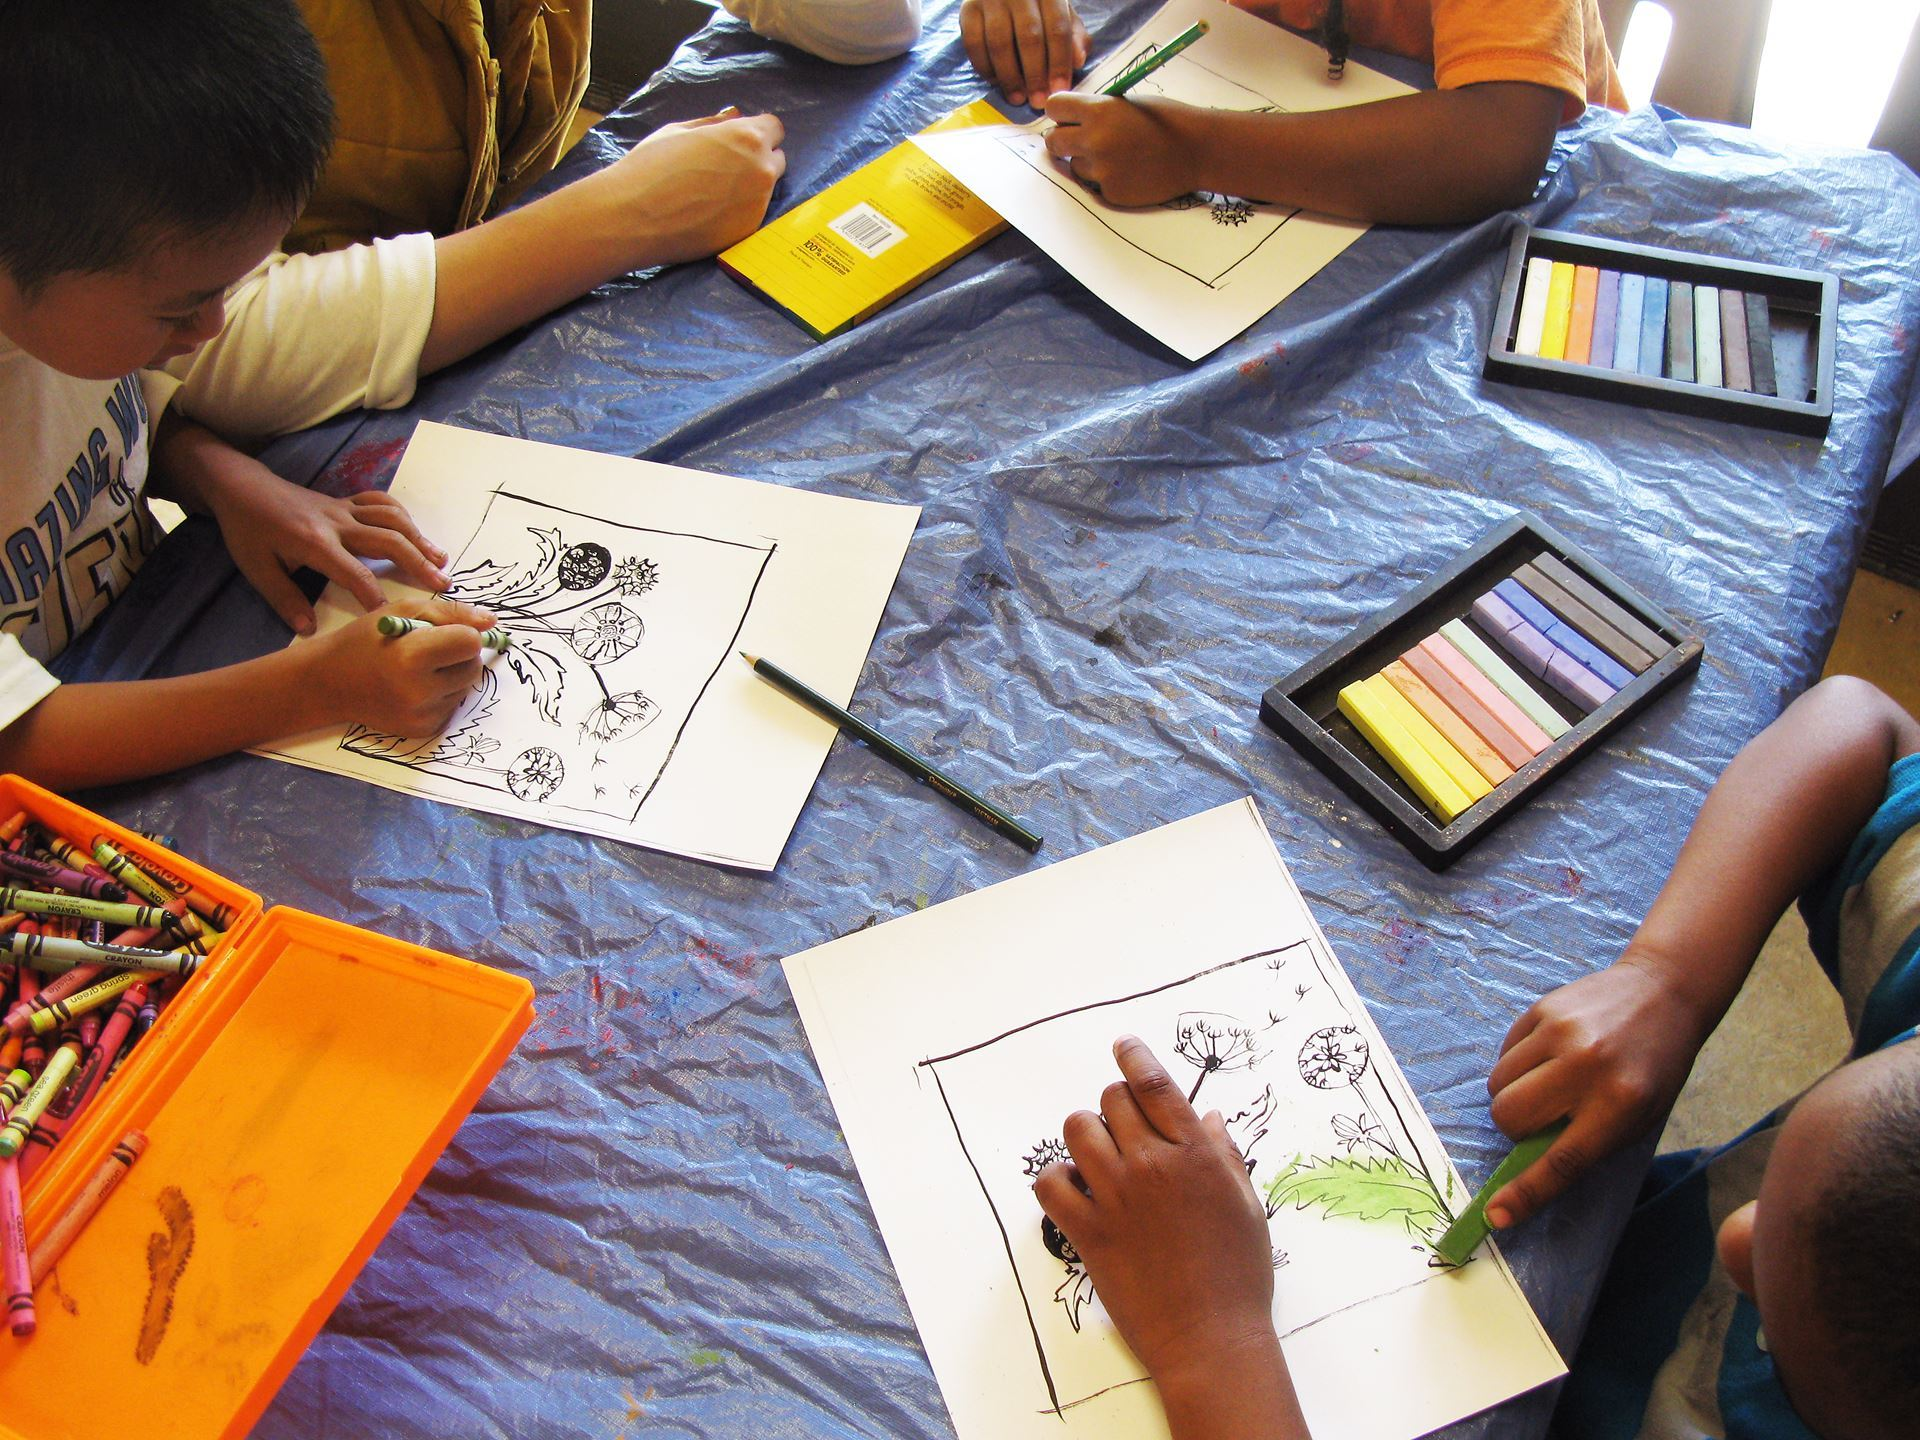 Photo of youth coloring with pastels.